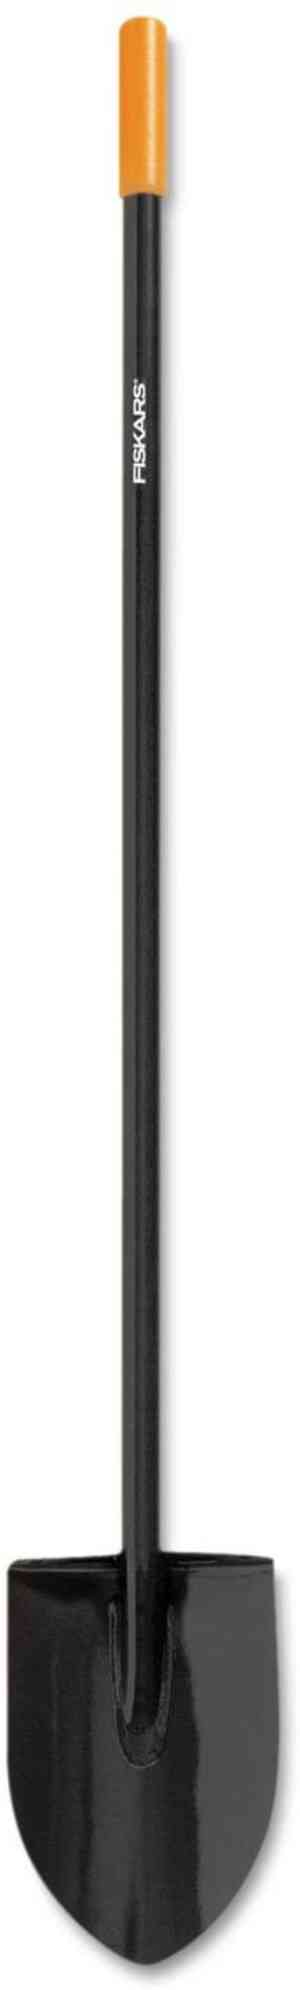 Fiskars Long Handle Digging Shovel